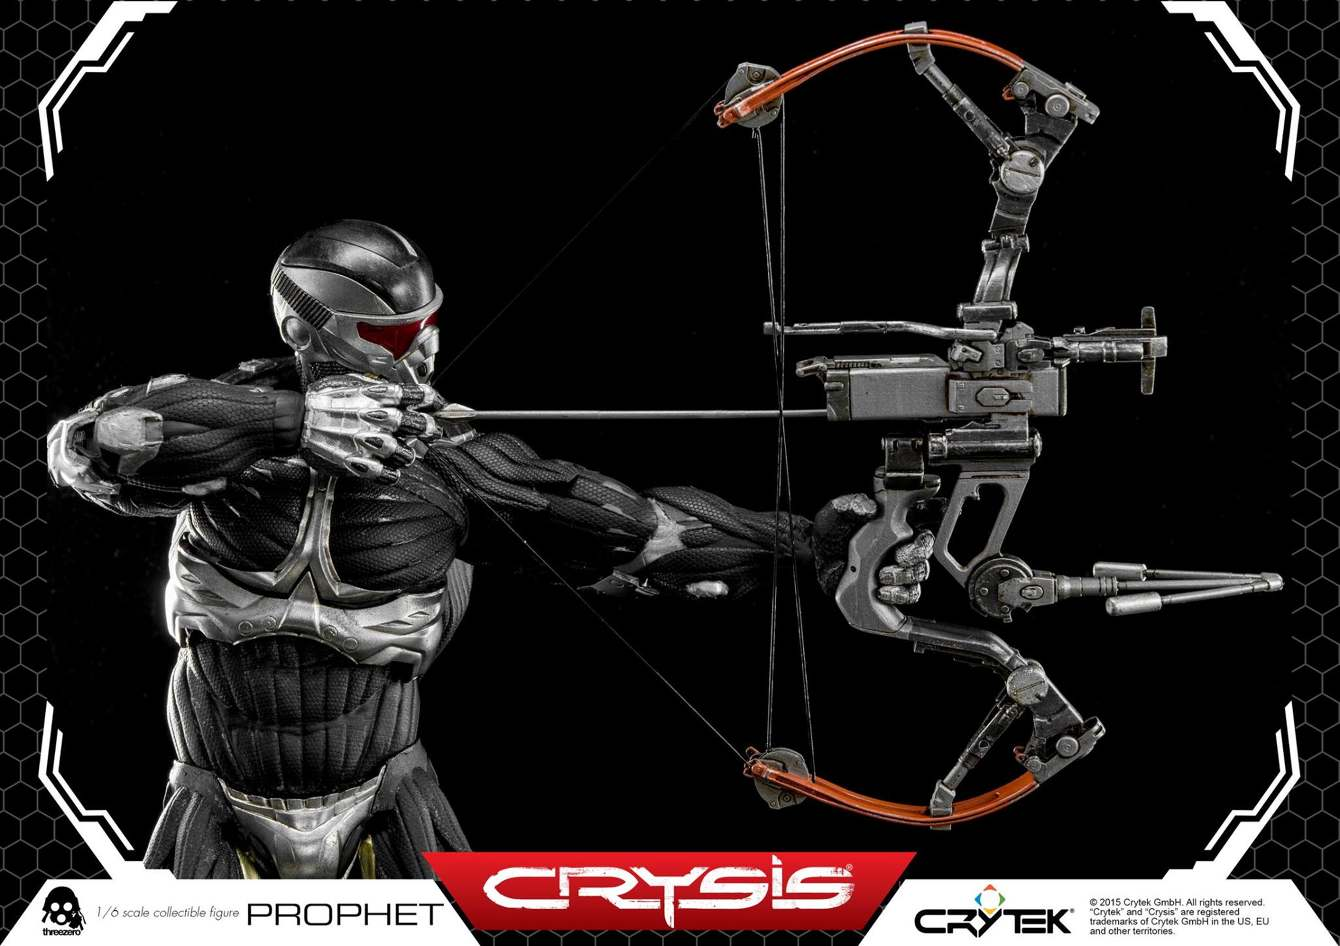 ThreeZero-Crysis-video-game-Prophet-CRY22_1340_c.jpg